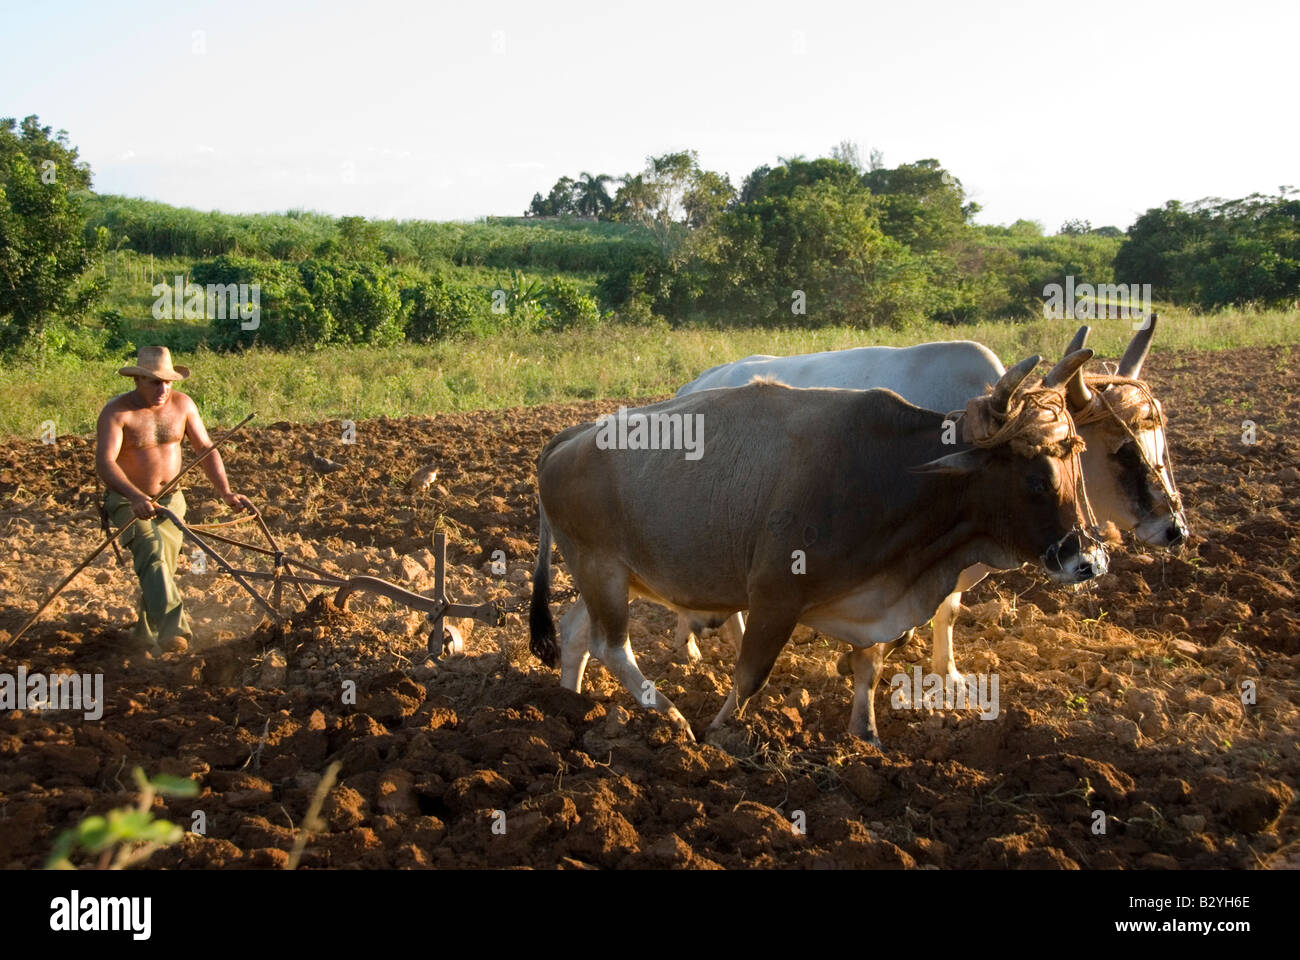 Cuban tobacco farmer ploughing field with oxen ready to plant in tobacco producing region of Viñales Cuba - Stock Image